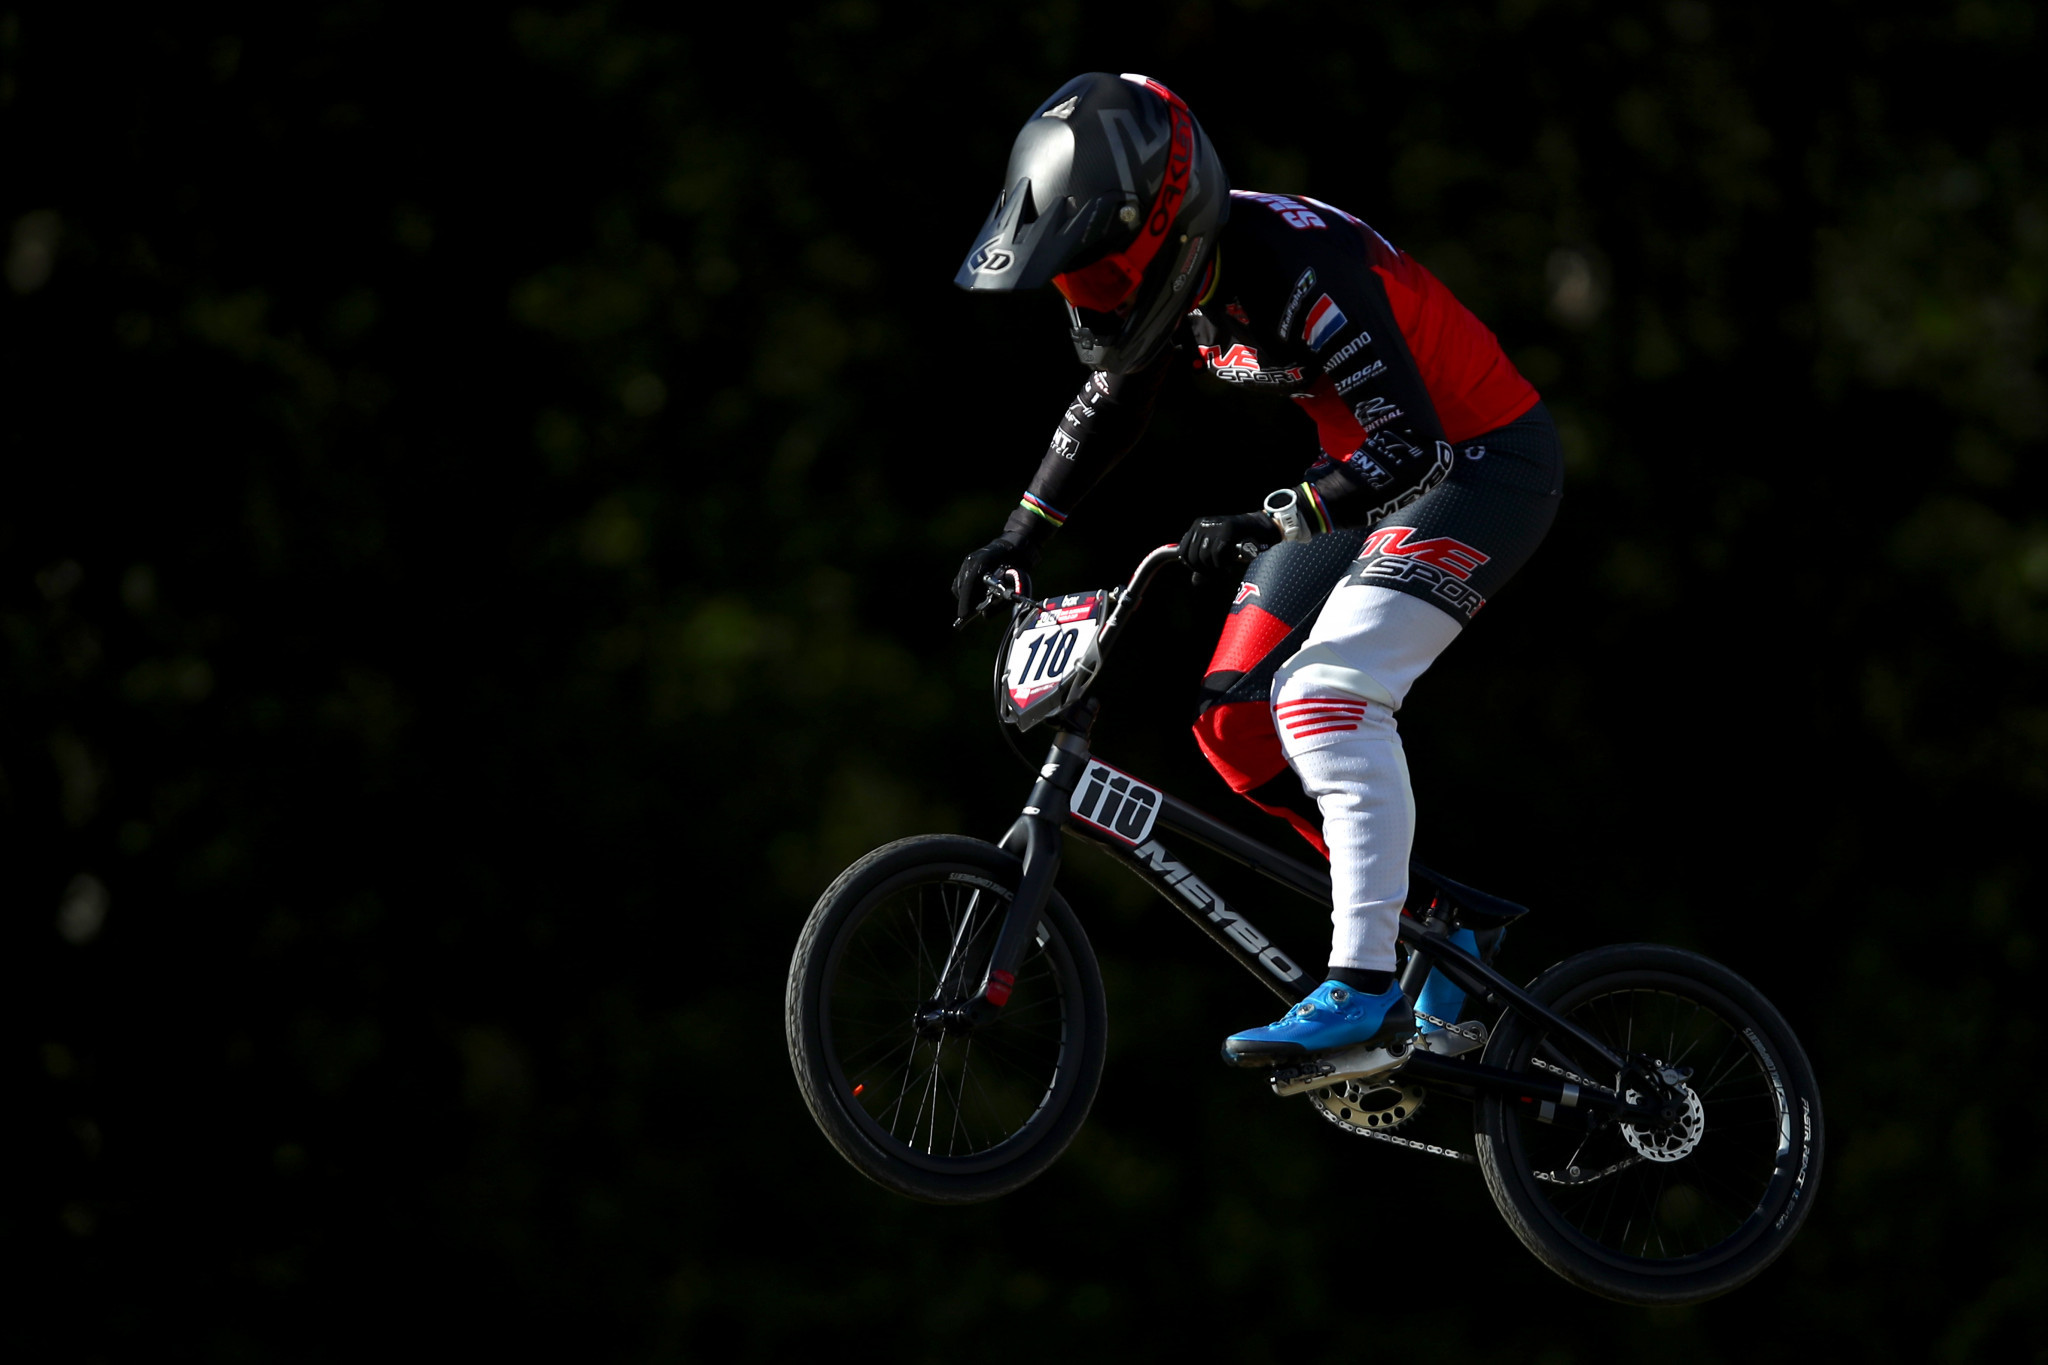 Verona ready for opening leg of UCI BMX Supercross World Cup season